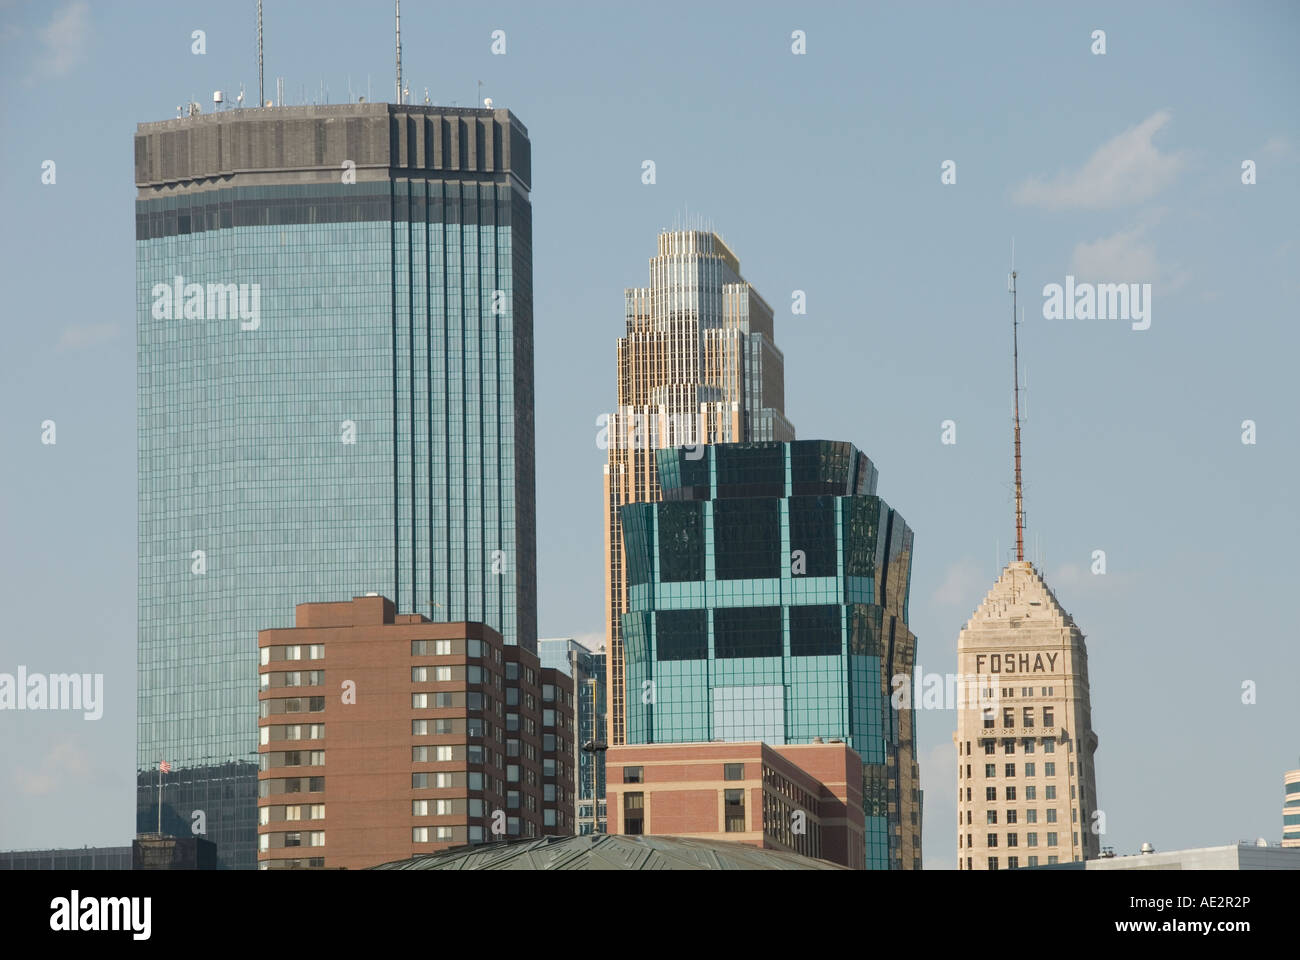 Minnesota Twin Cities Minneapolis Saint Paul Skyscrapers of Minneapolis including the Foshay Tower and IDS Building - Stock Image